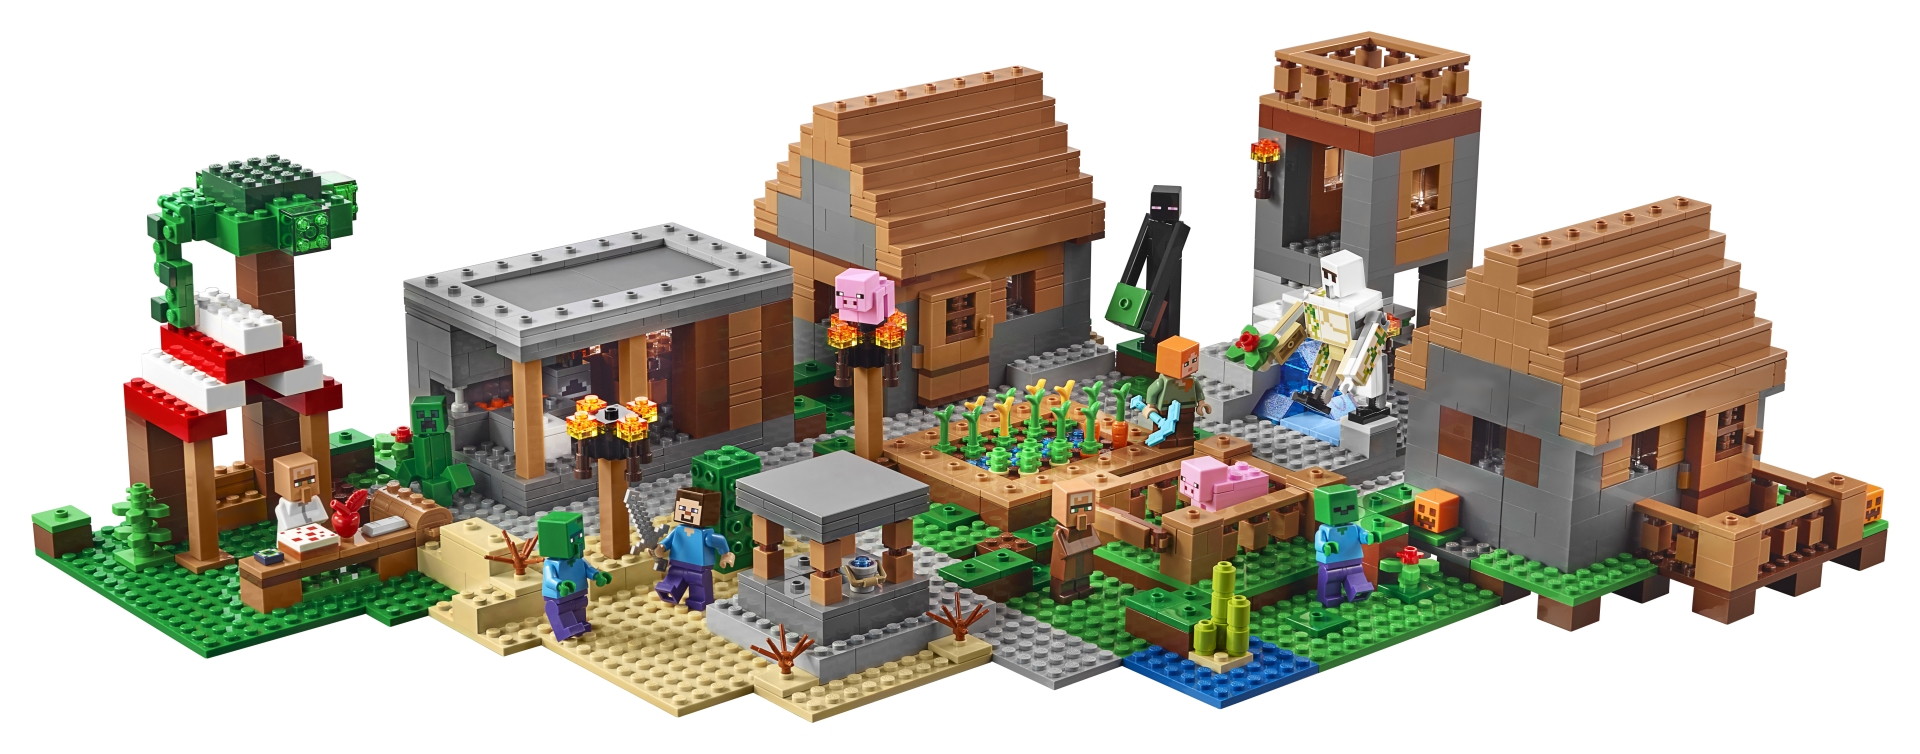 Lego 21128 The Minecraft Village Was Officially Revealed